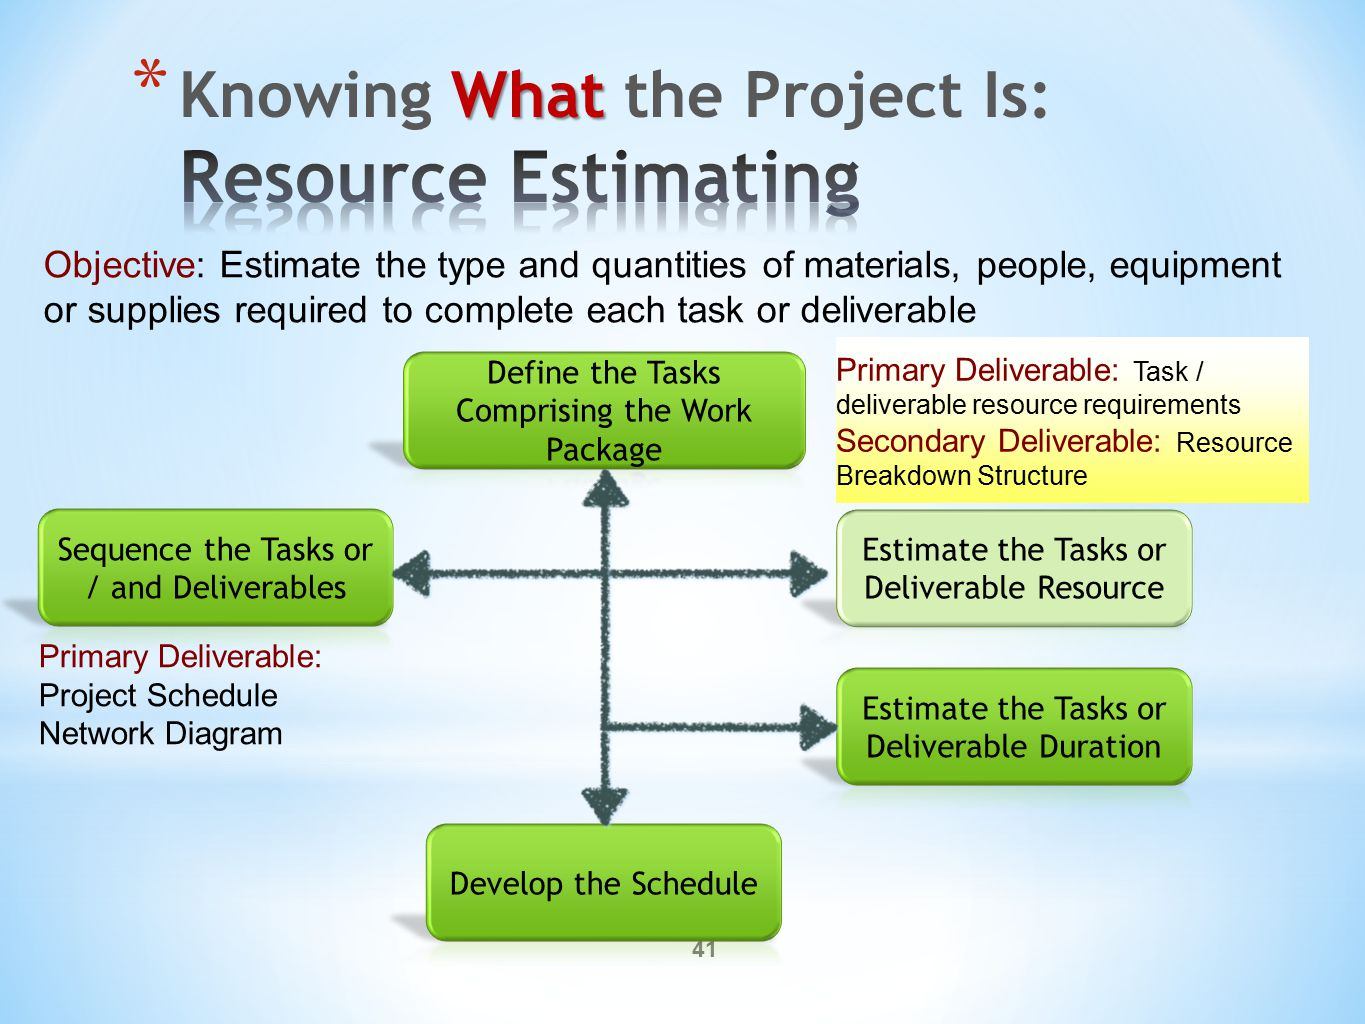 41 Objective: Estimate the type and quantities of materials, people, equipment or supplies required to complete each task or deliverable Primary Deliverable: Task / deliverable resource requirements Secondary Deliverable: Resource Breakdown Structure Primary Deliverable: Project Schedule Network Diagram